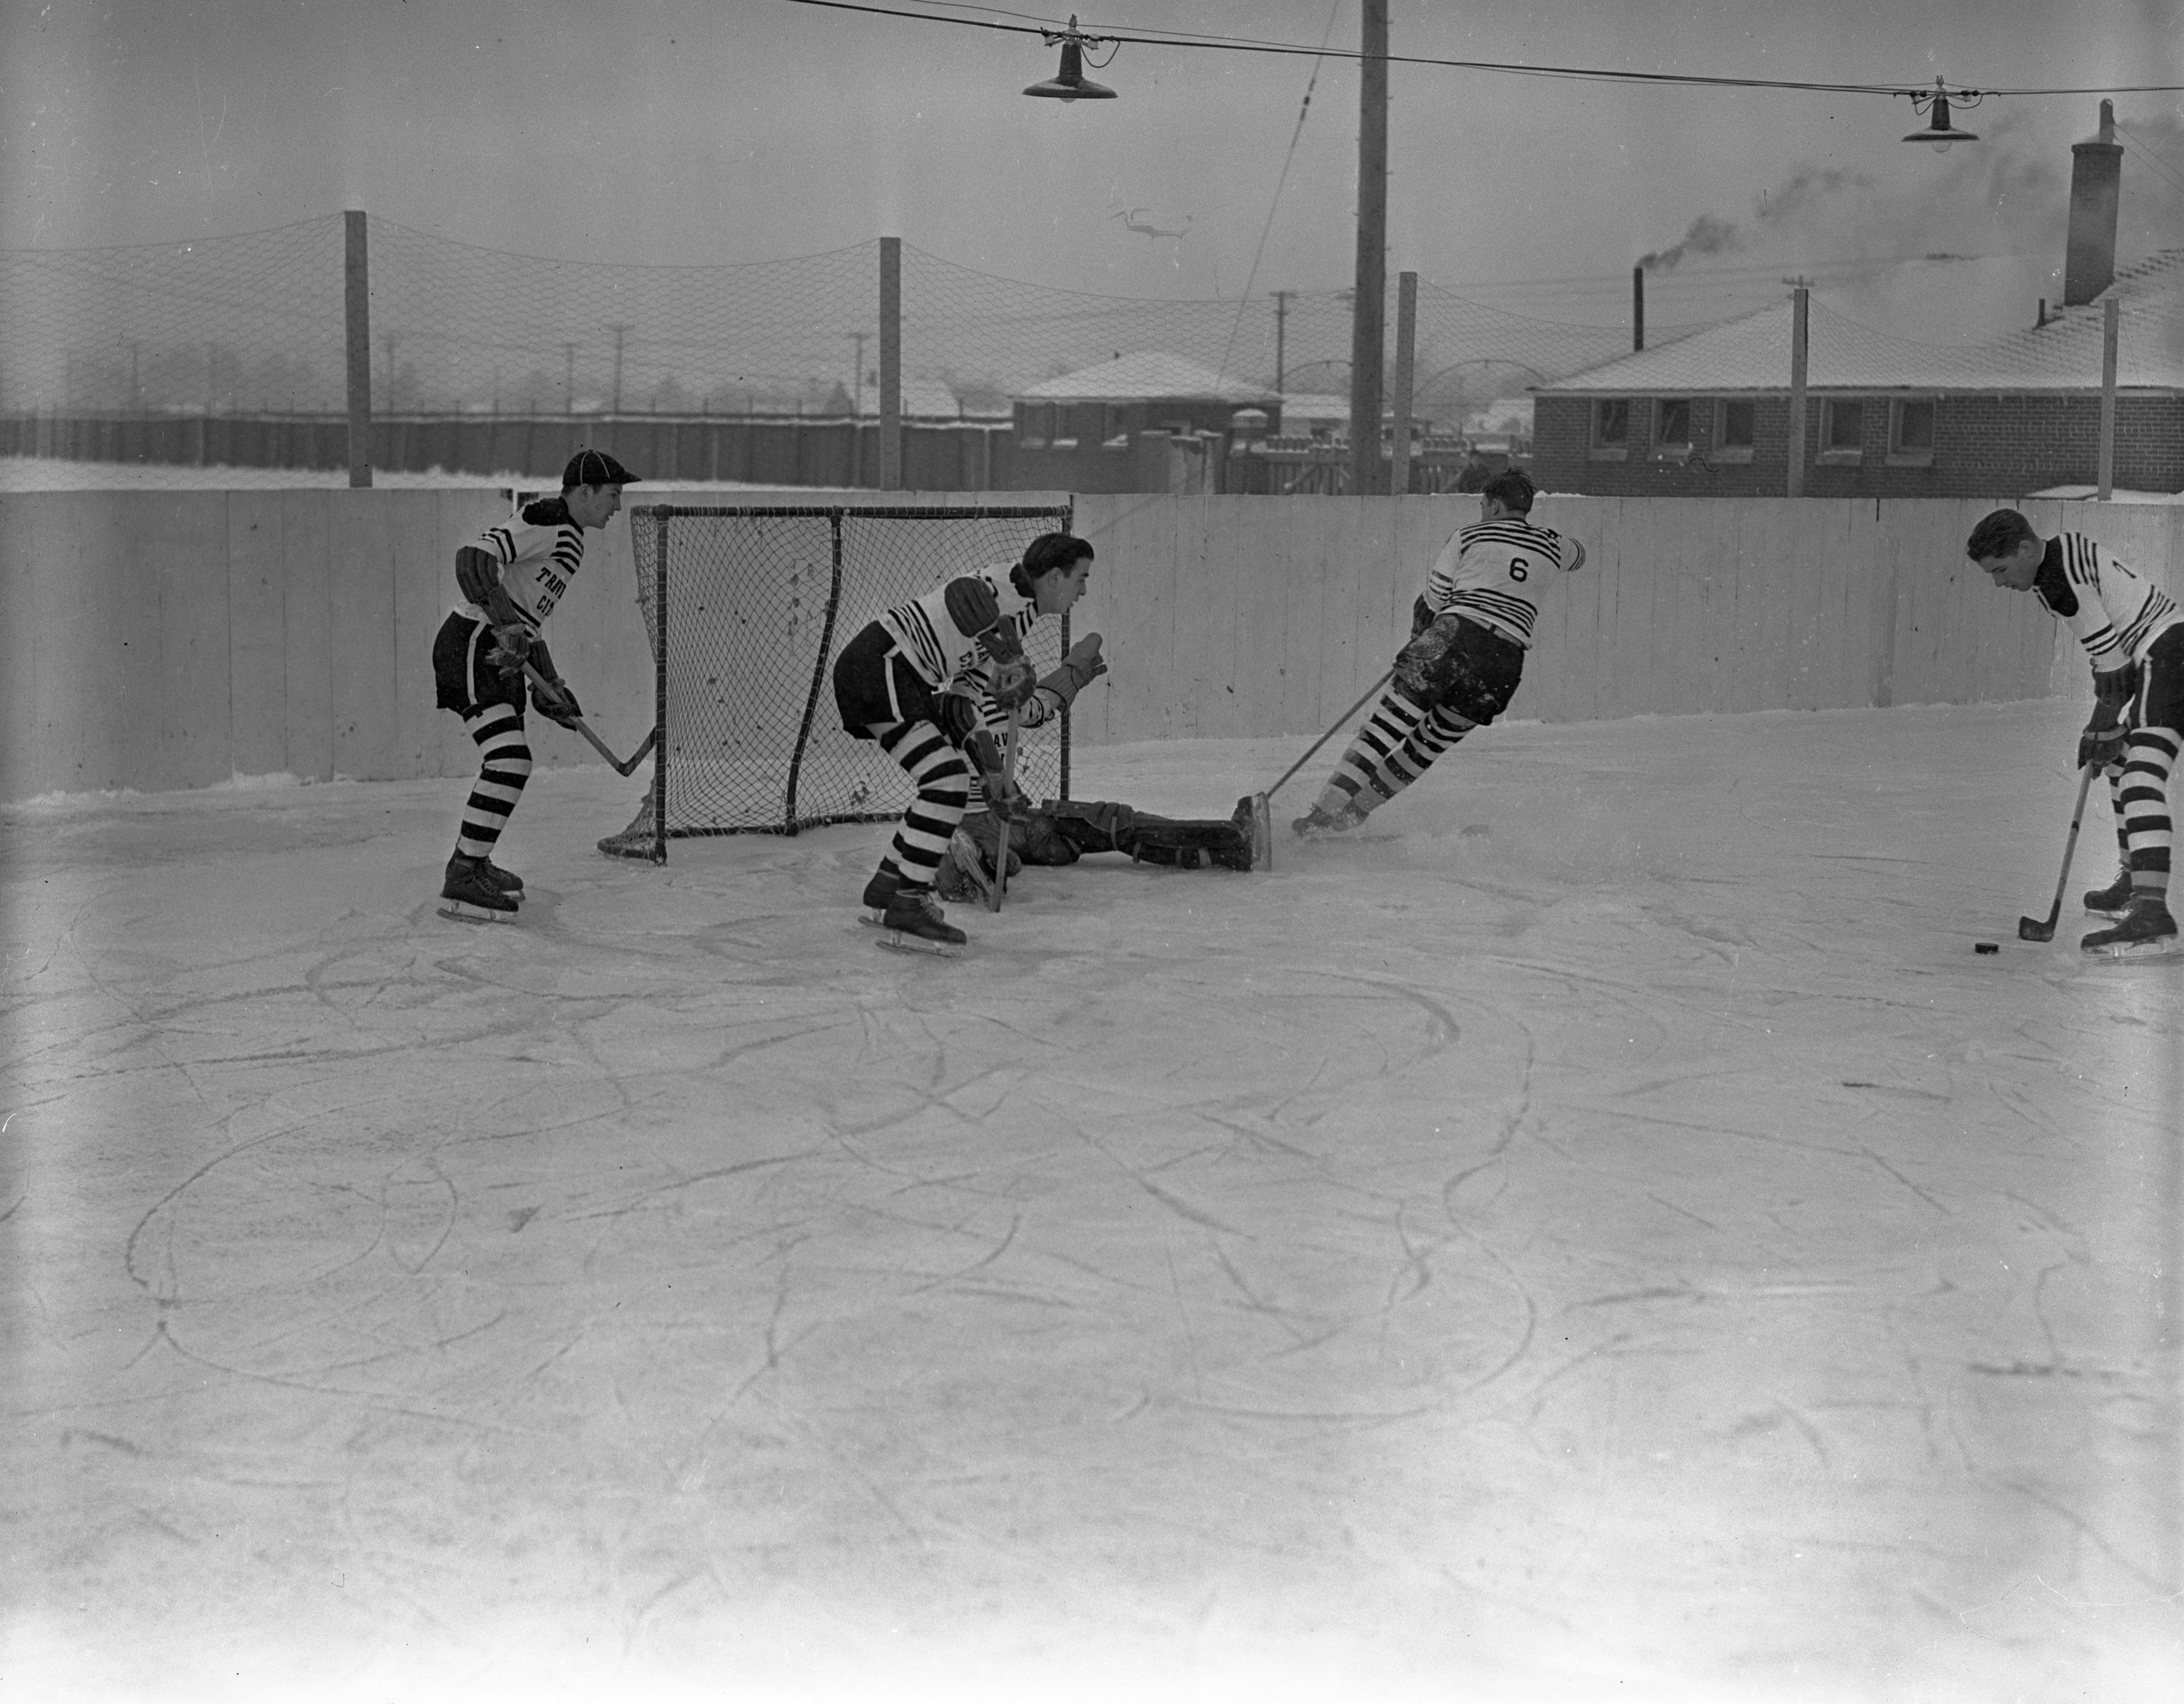 Hockey On Outdoor Ice Rink In Traverse City, January 1940 image